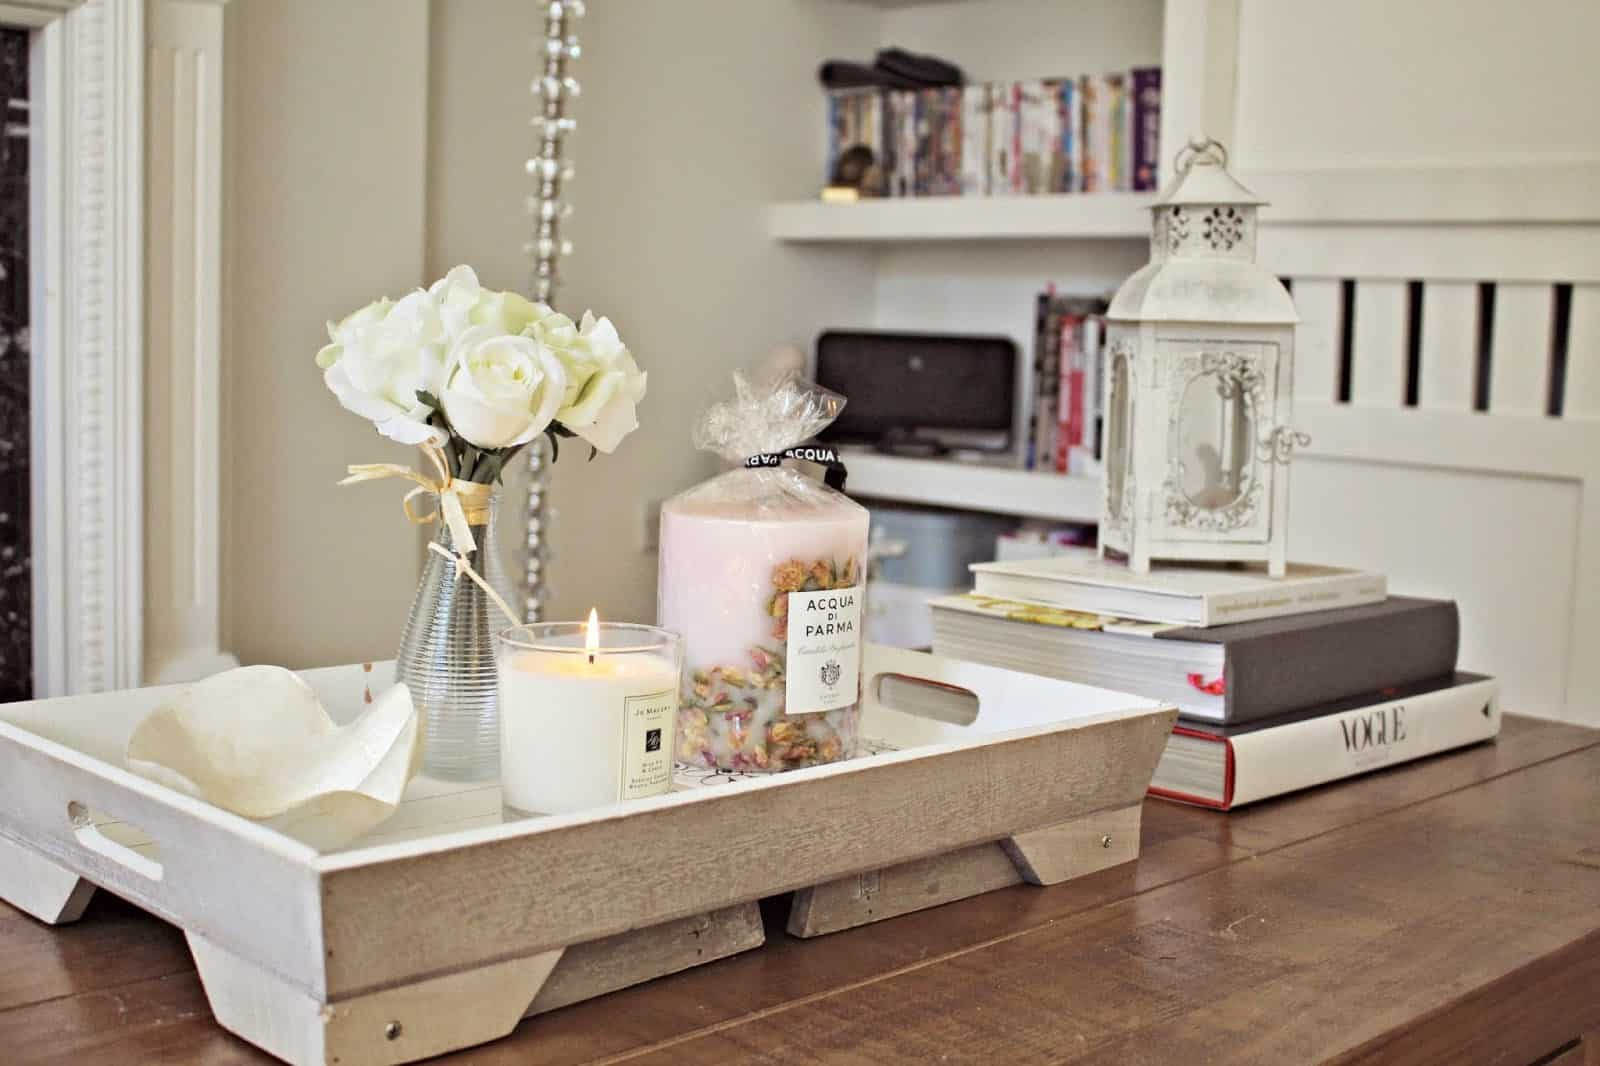 coffee table books and candlee